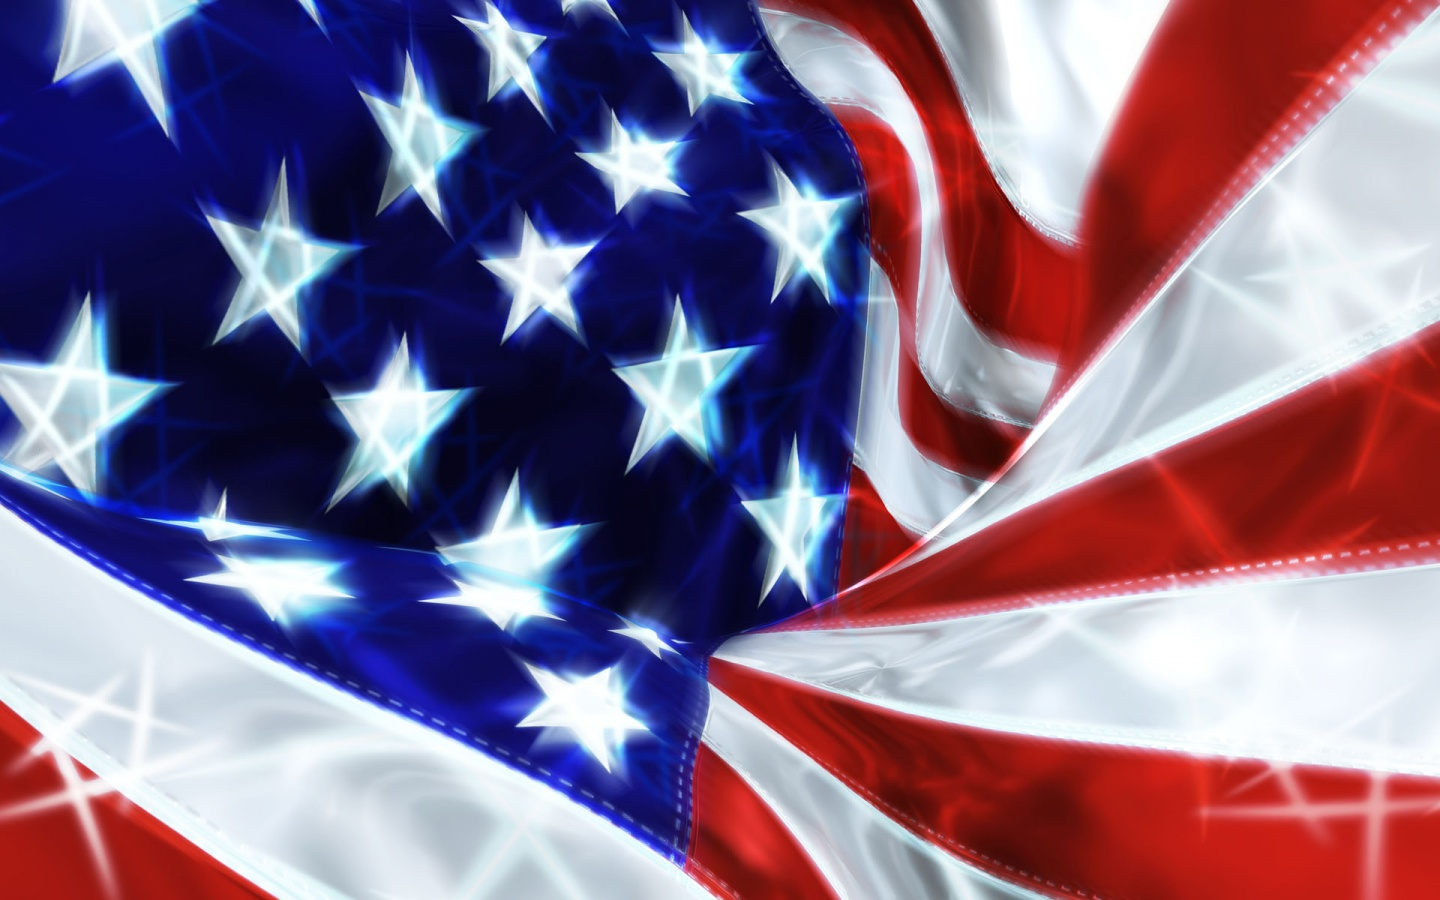 1440x900 USA Flag Celebration desktop PC and Mac wallpaper 1440x900